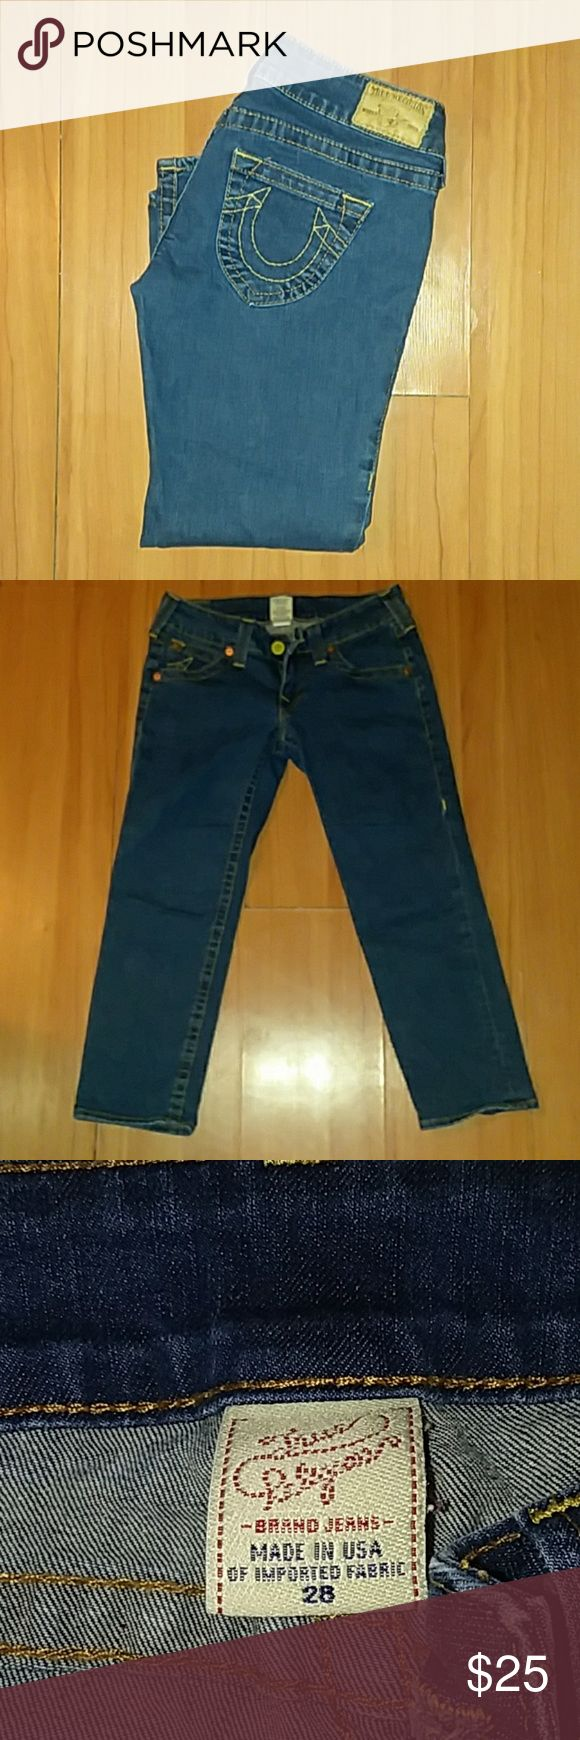 True Religion cropped jeans Excellent condition cropped True Religion jeans. No flaws. True Religion Jeans Ankle & Cropped